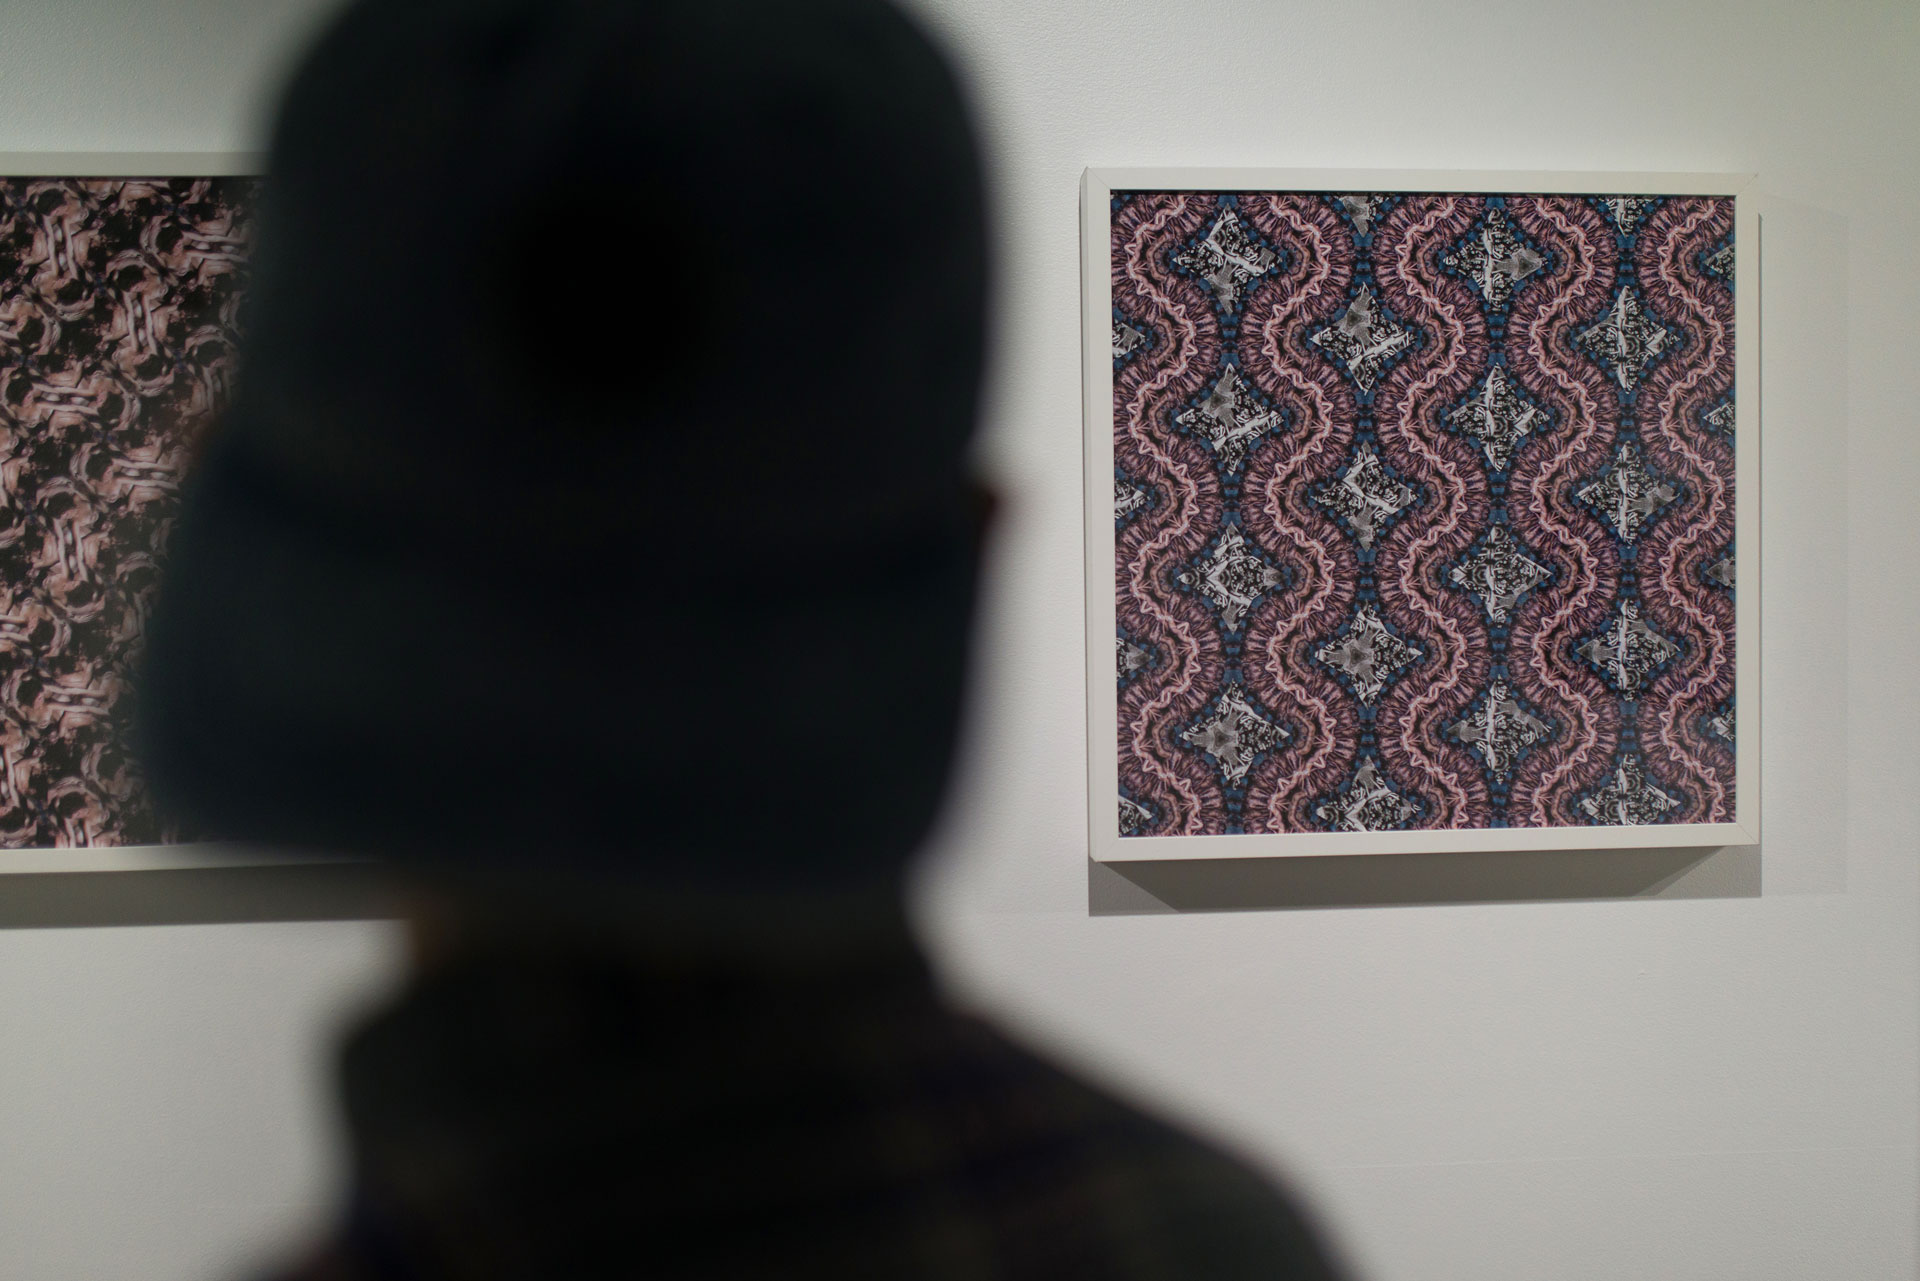 Pandemoniums series on display — Gustavo Chams' Meandering, Inflections and Angry Camels photography exhibition in Vancouver